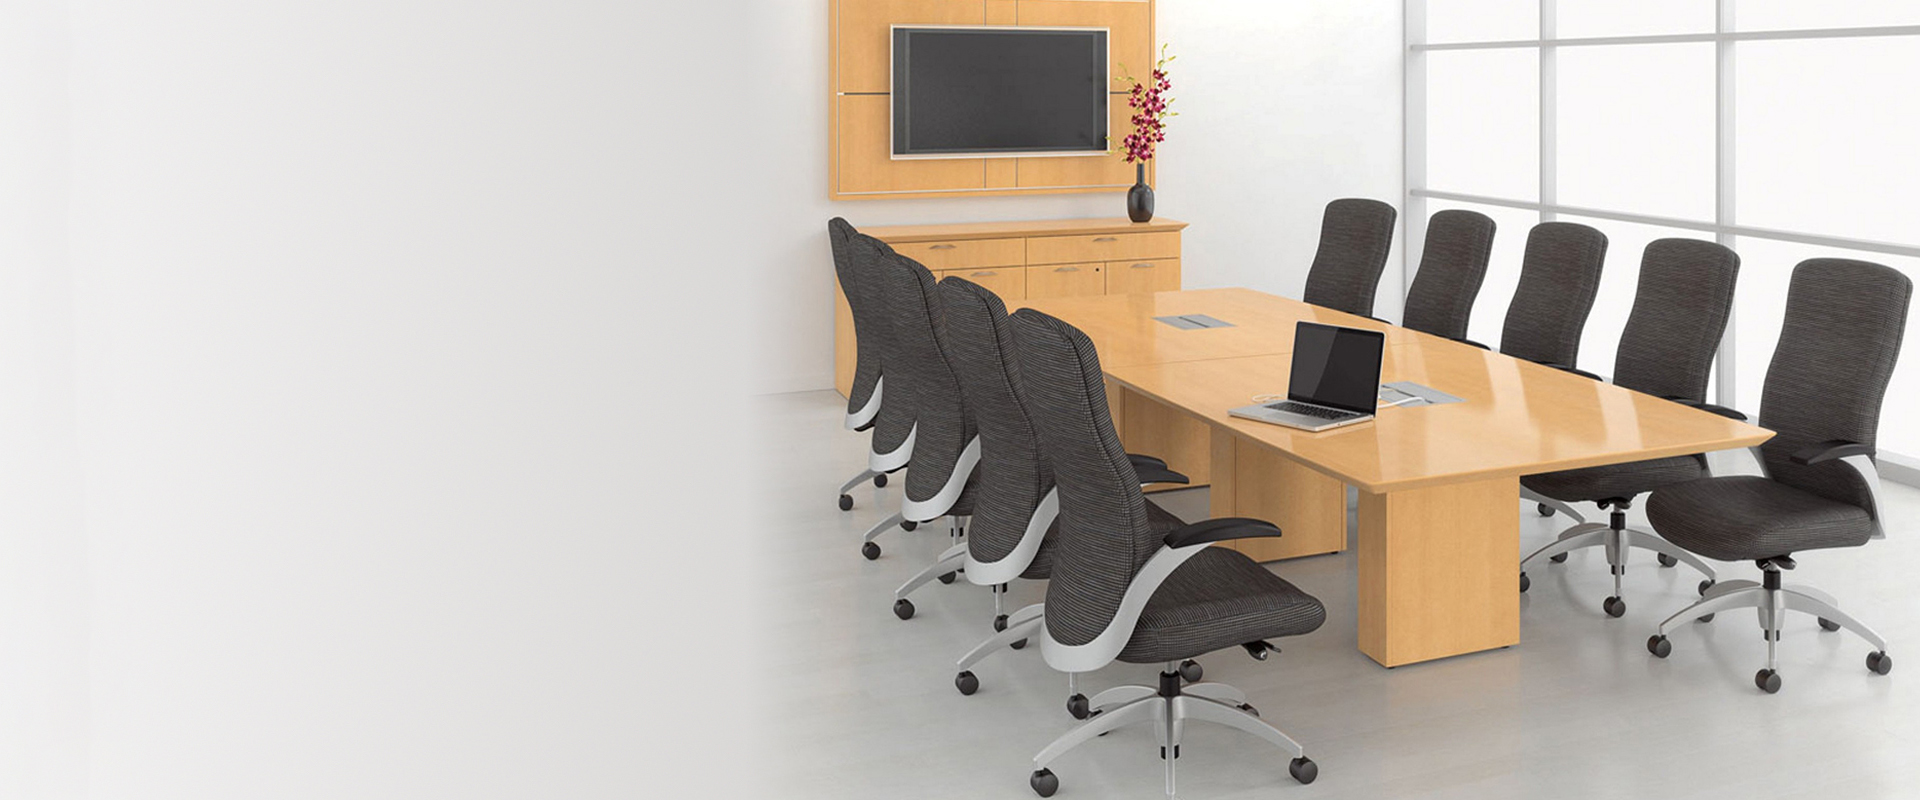 WITH CELIO OFFICE FURNITURE BUY USED AND SAVE THE DIFFERENCE